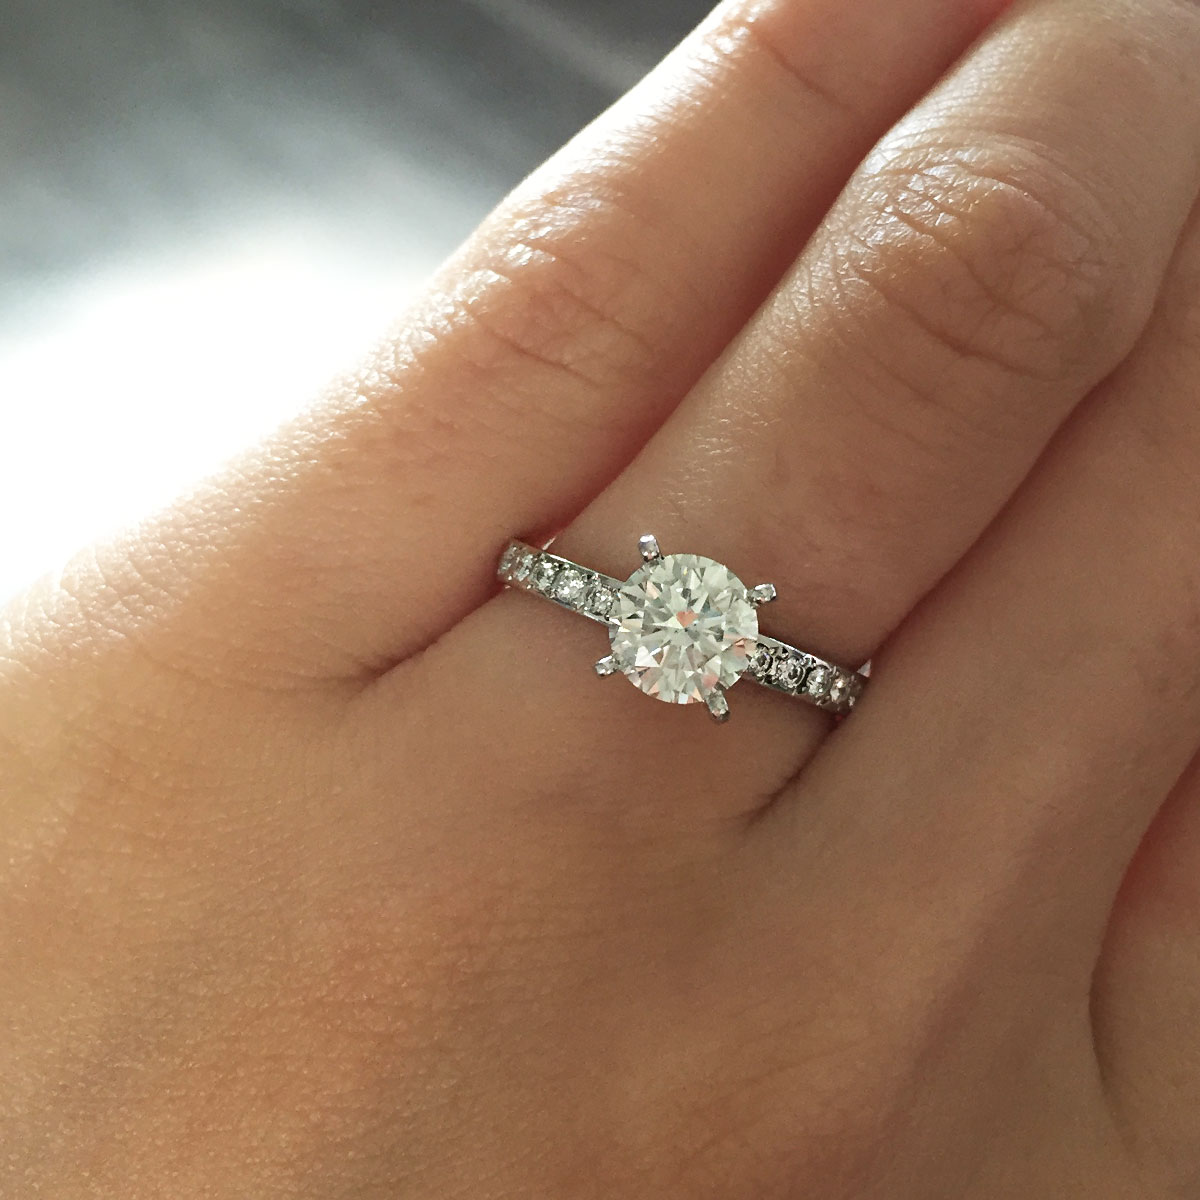 Raymond Lee Jewelers Engagement Rings